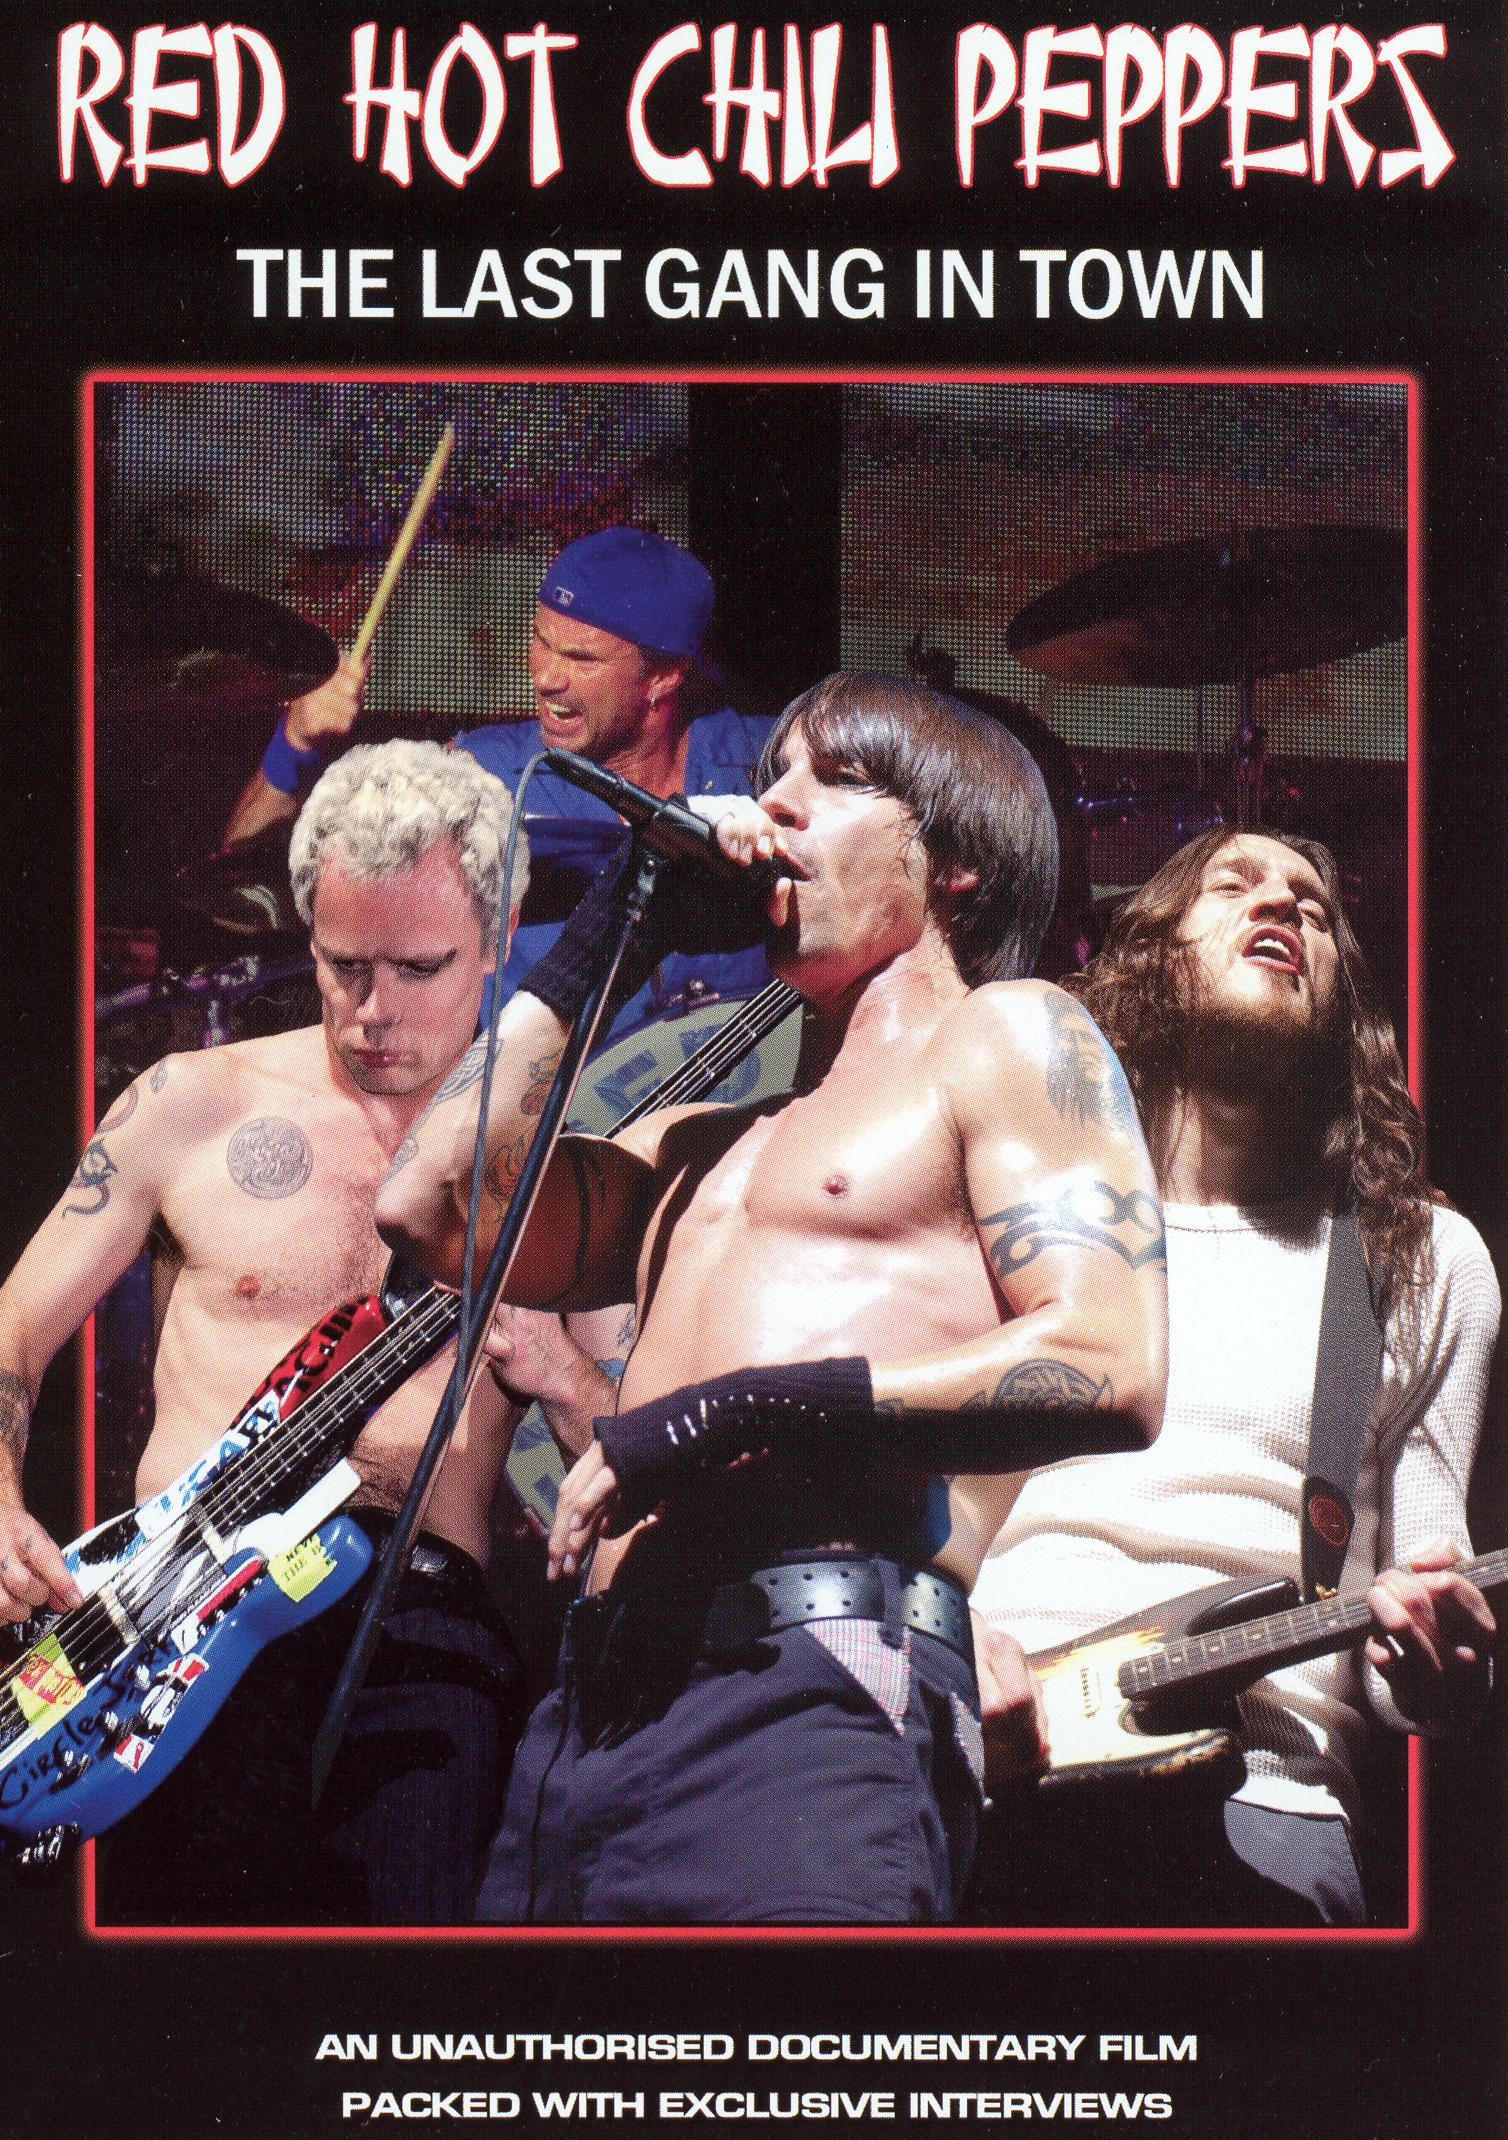 Red Hot Chili Peppers: The Last Gang in Town